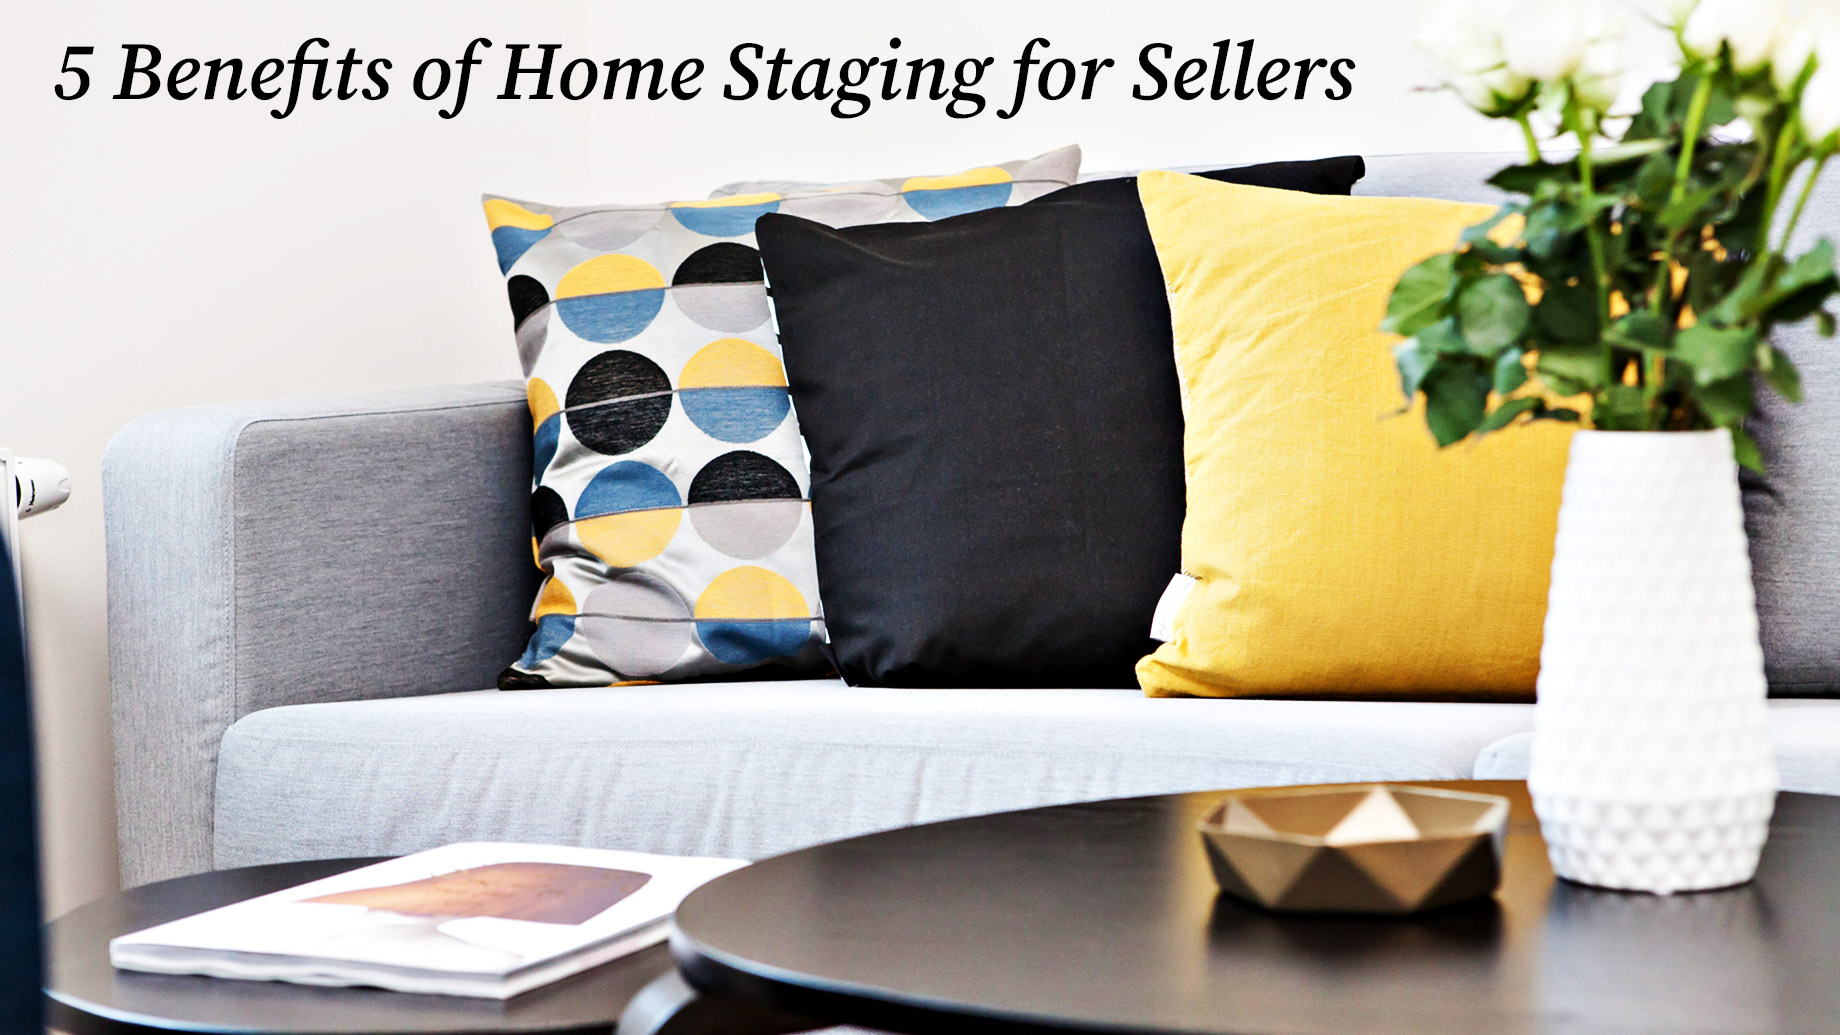 Set the Stage - 5 Benefits of Home Staging for Sellers